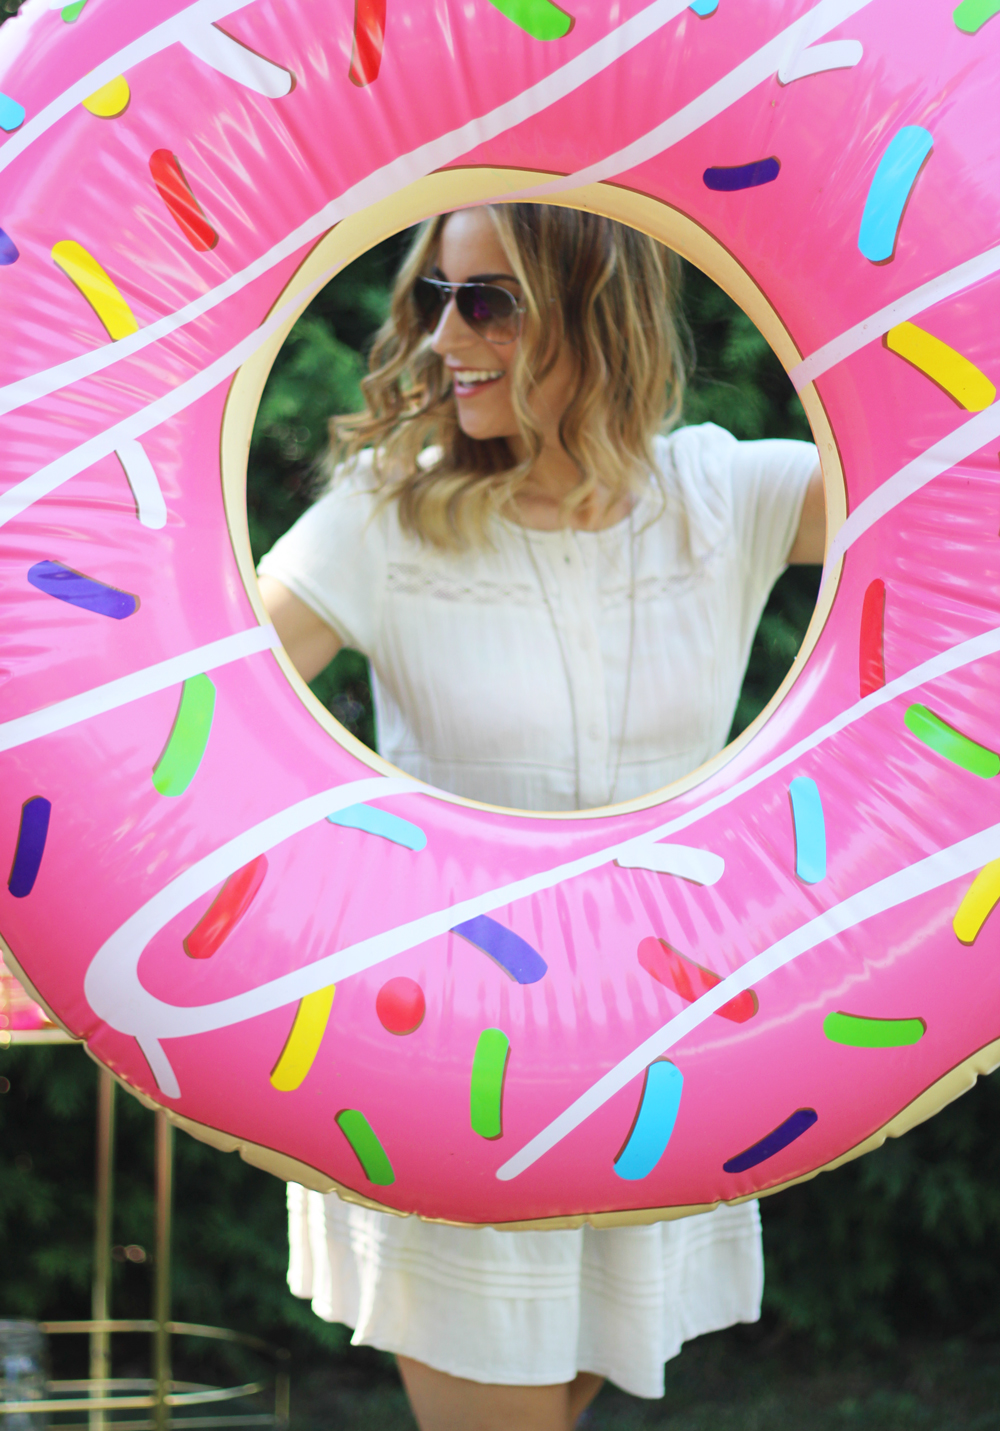 giant donut pool float from Indigo